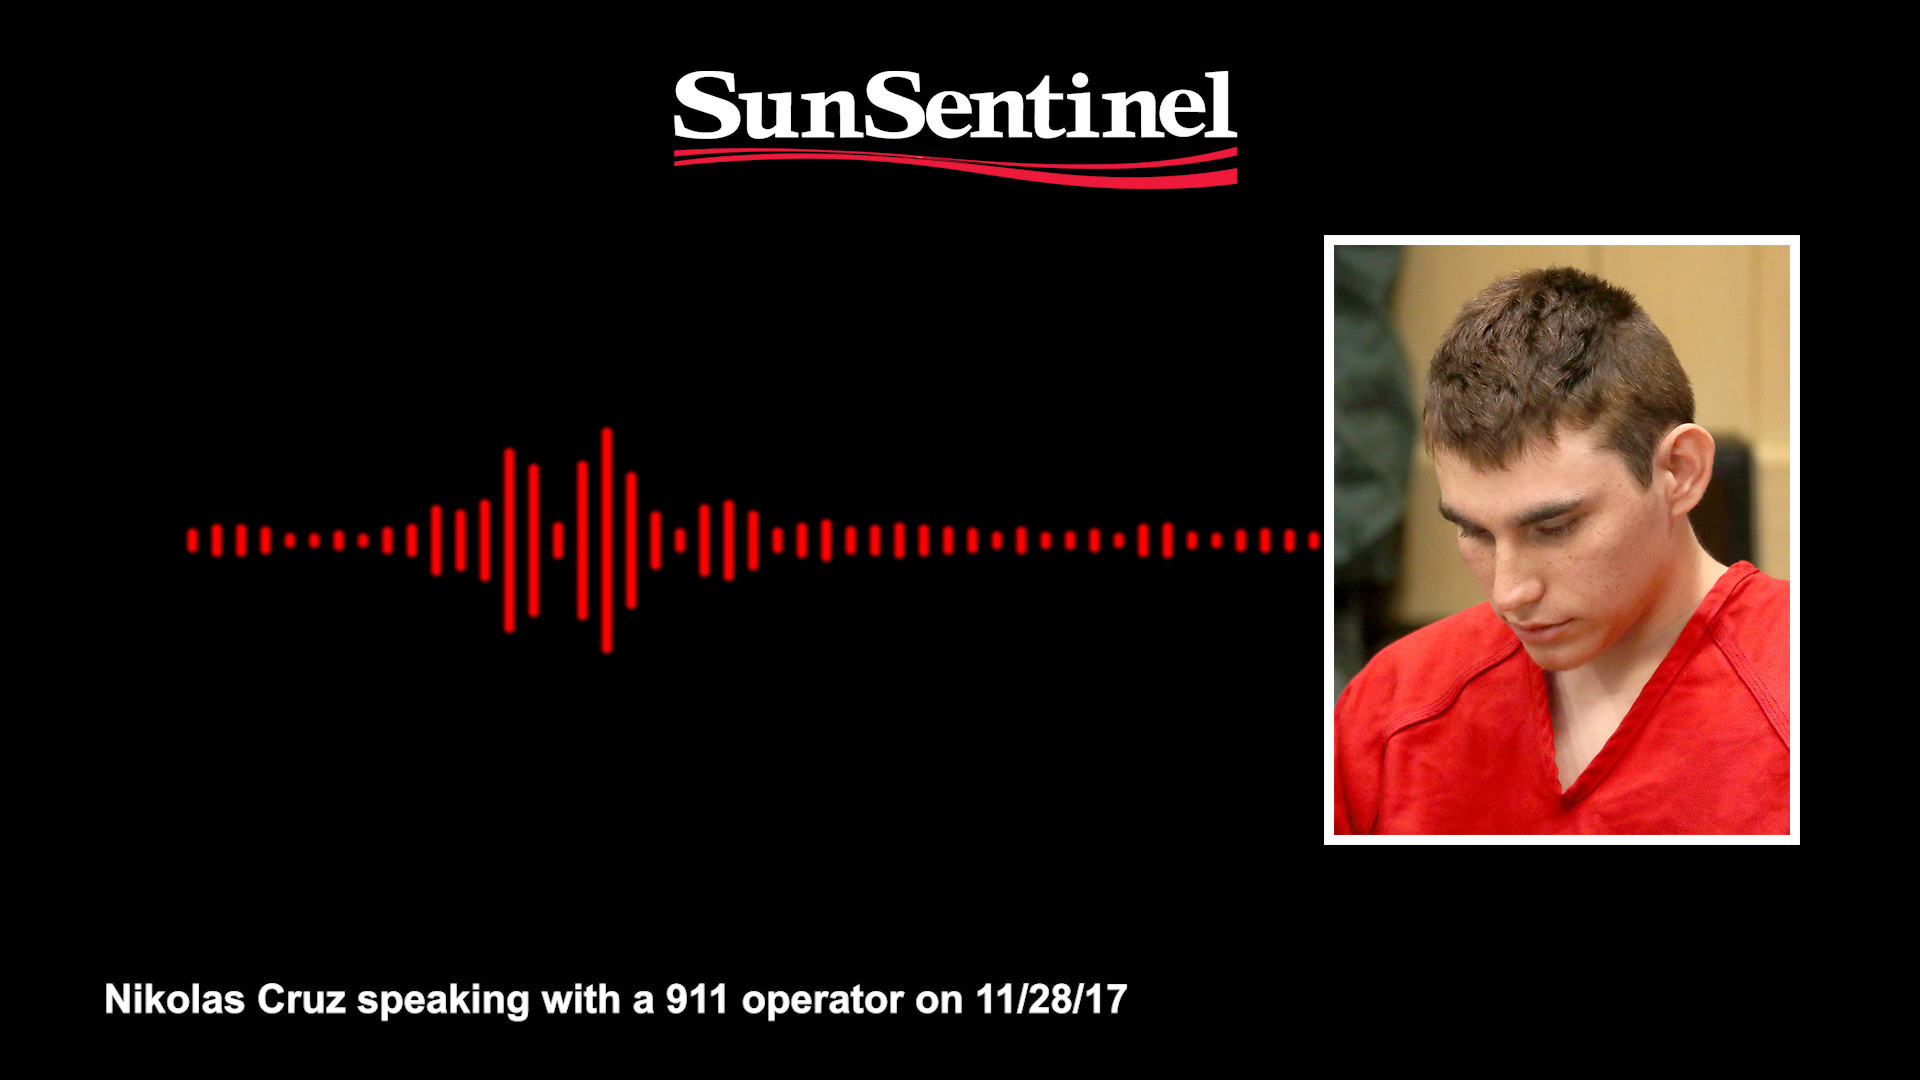 A lost and lonely killer - South Florida Sun-Sentinel